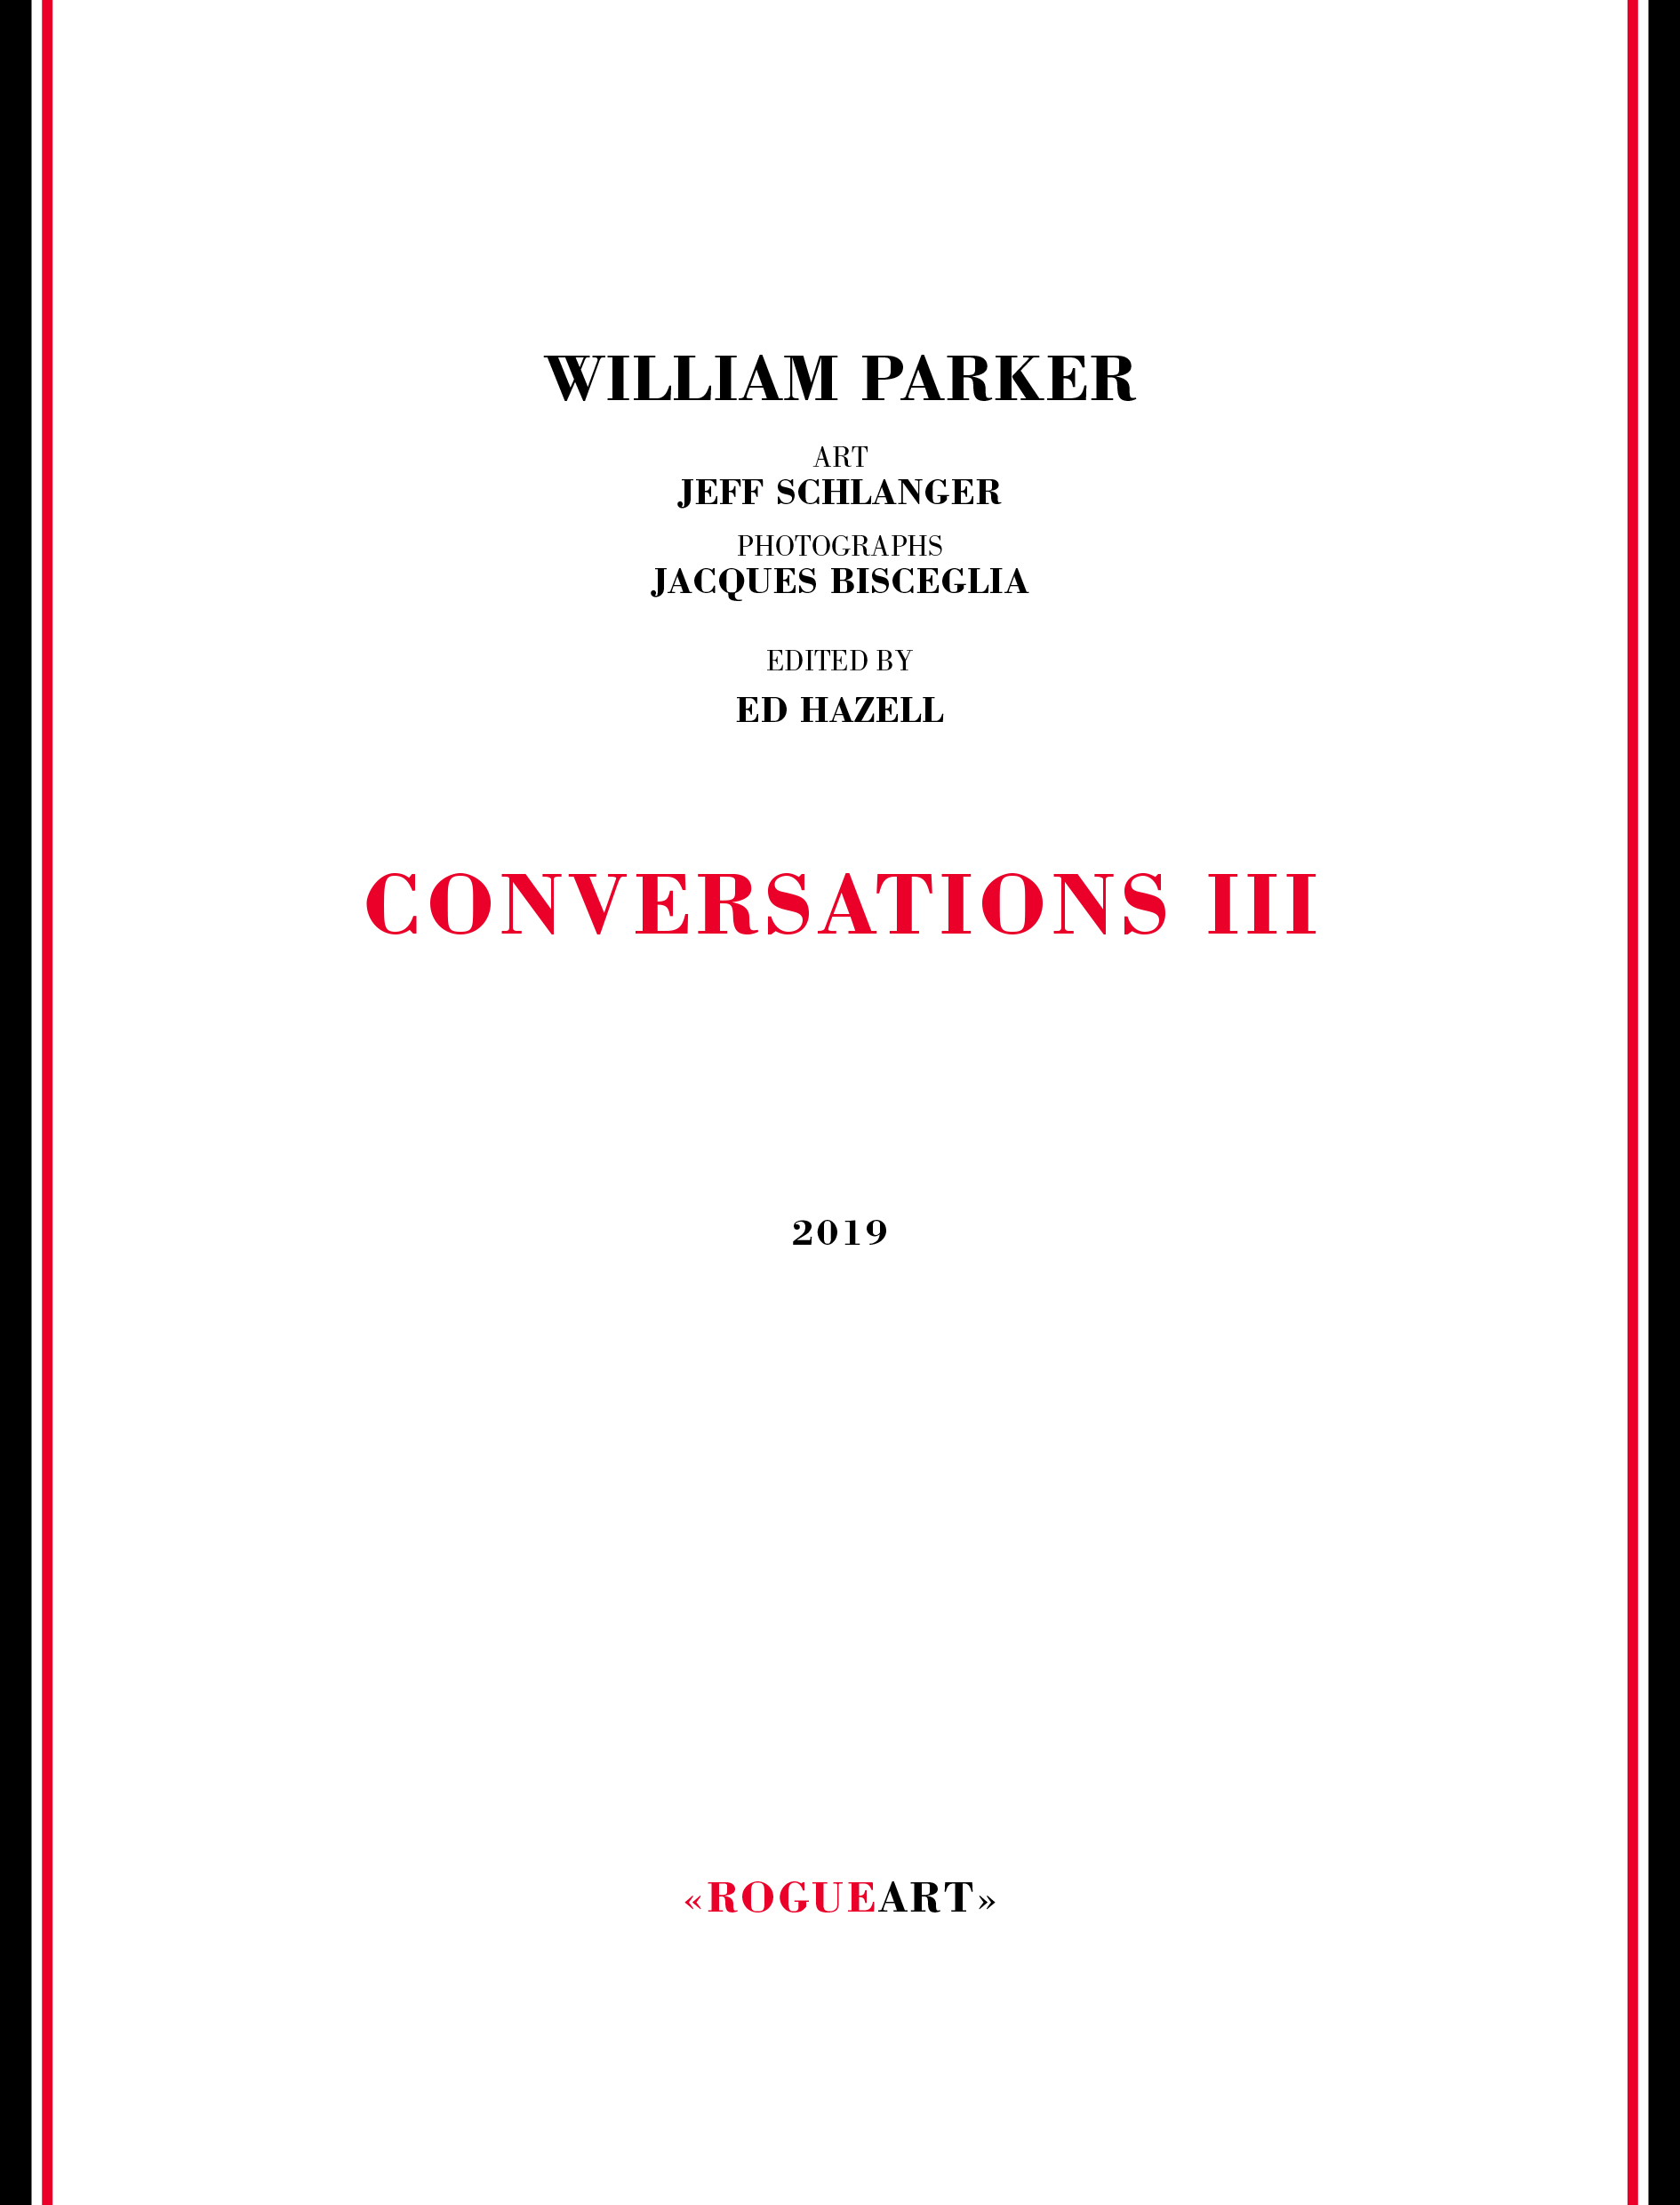 Front cover of the book CONVERSATIONS III